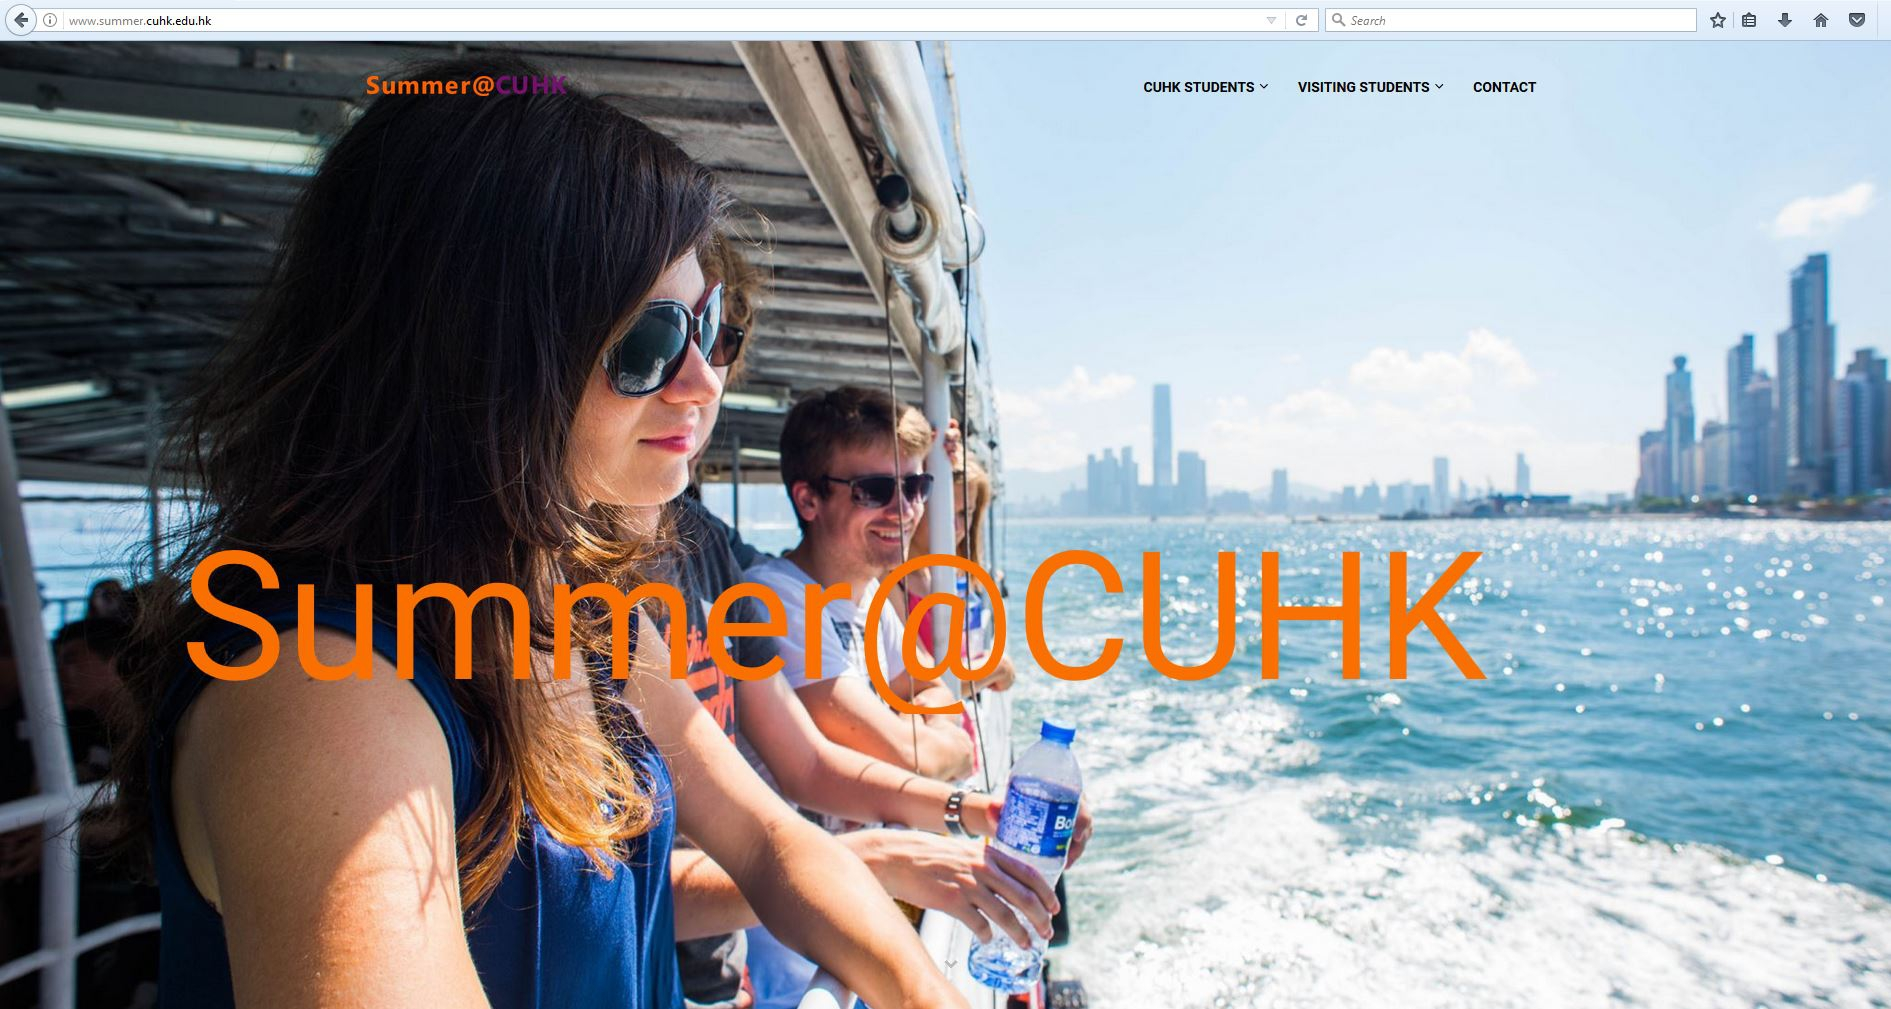 CUHK launches a new online portal and directory, 'Summer@CUHK', which consolidates local, international and mainland summer programmes for both CUHK students and visiting students.